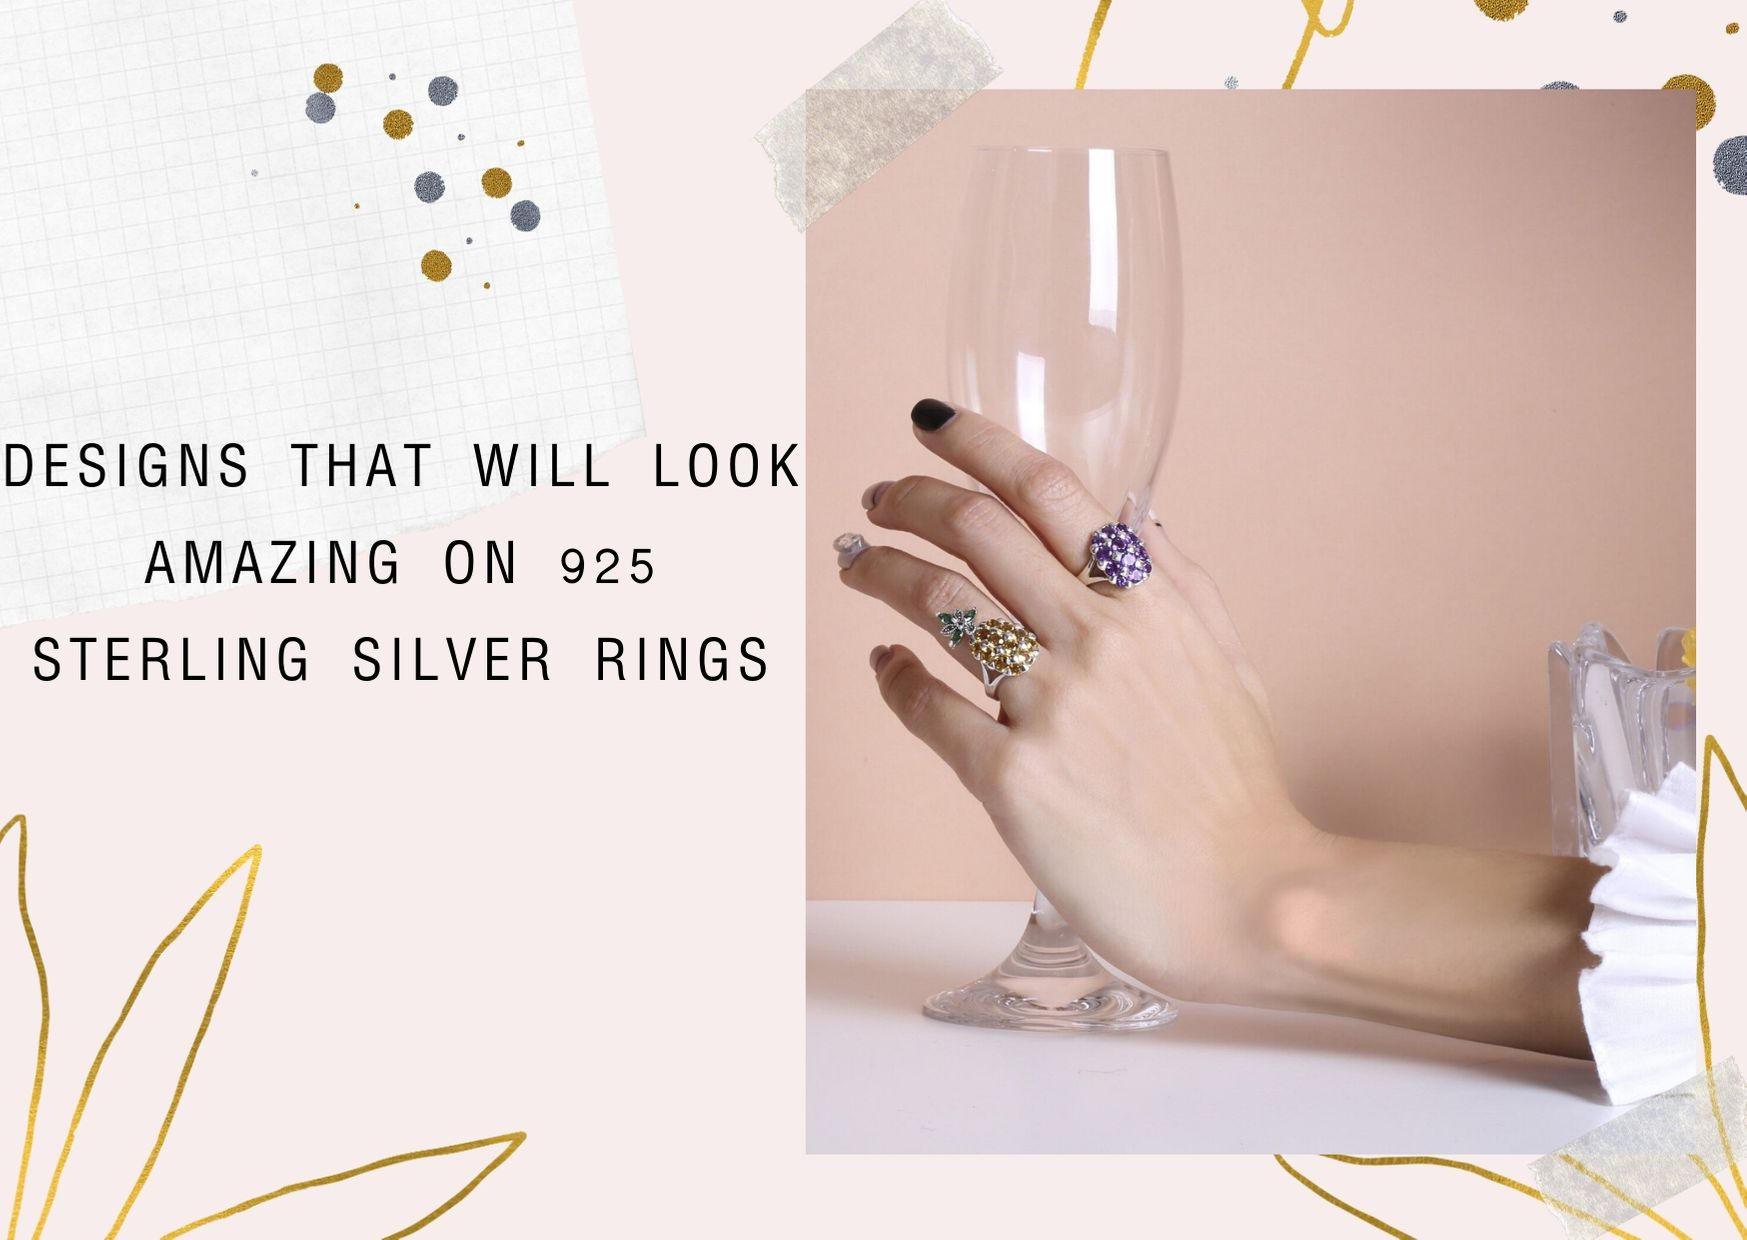 Designs that will look amazing on 925 sterling silver rings